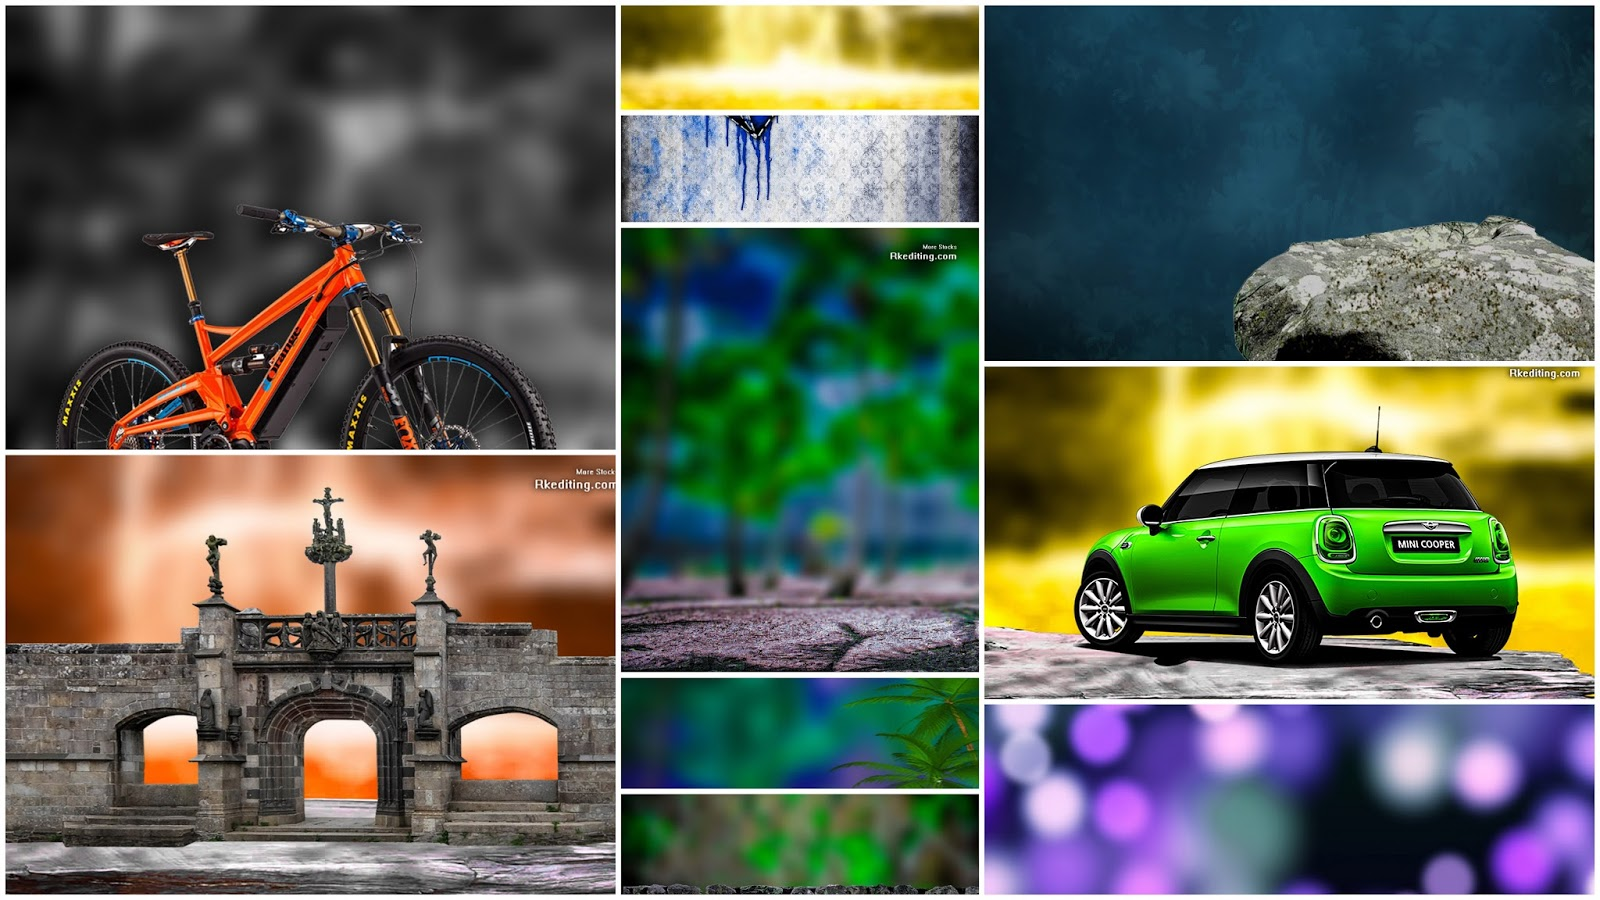 Hd Background Images For Photoshop Editing Editing Zone Cb Edits